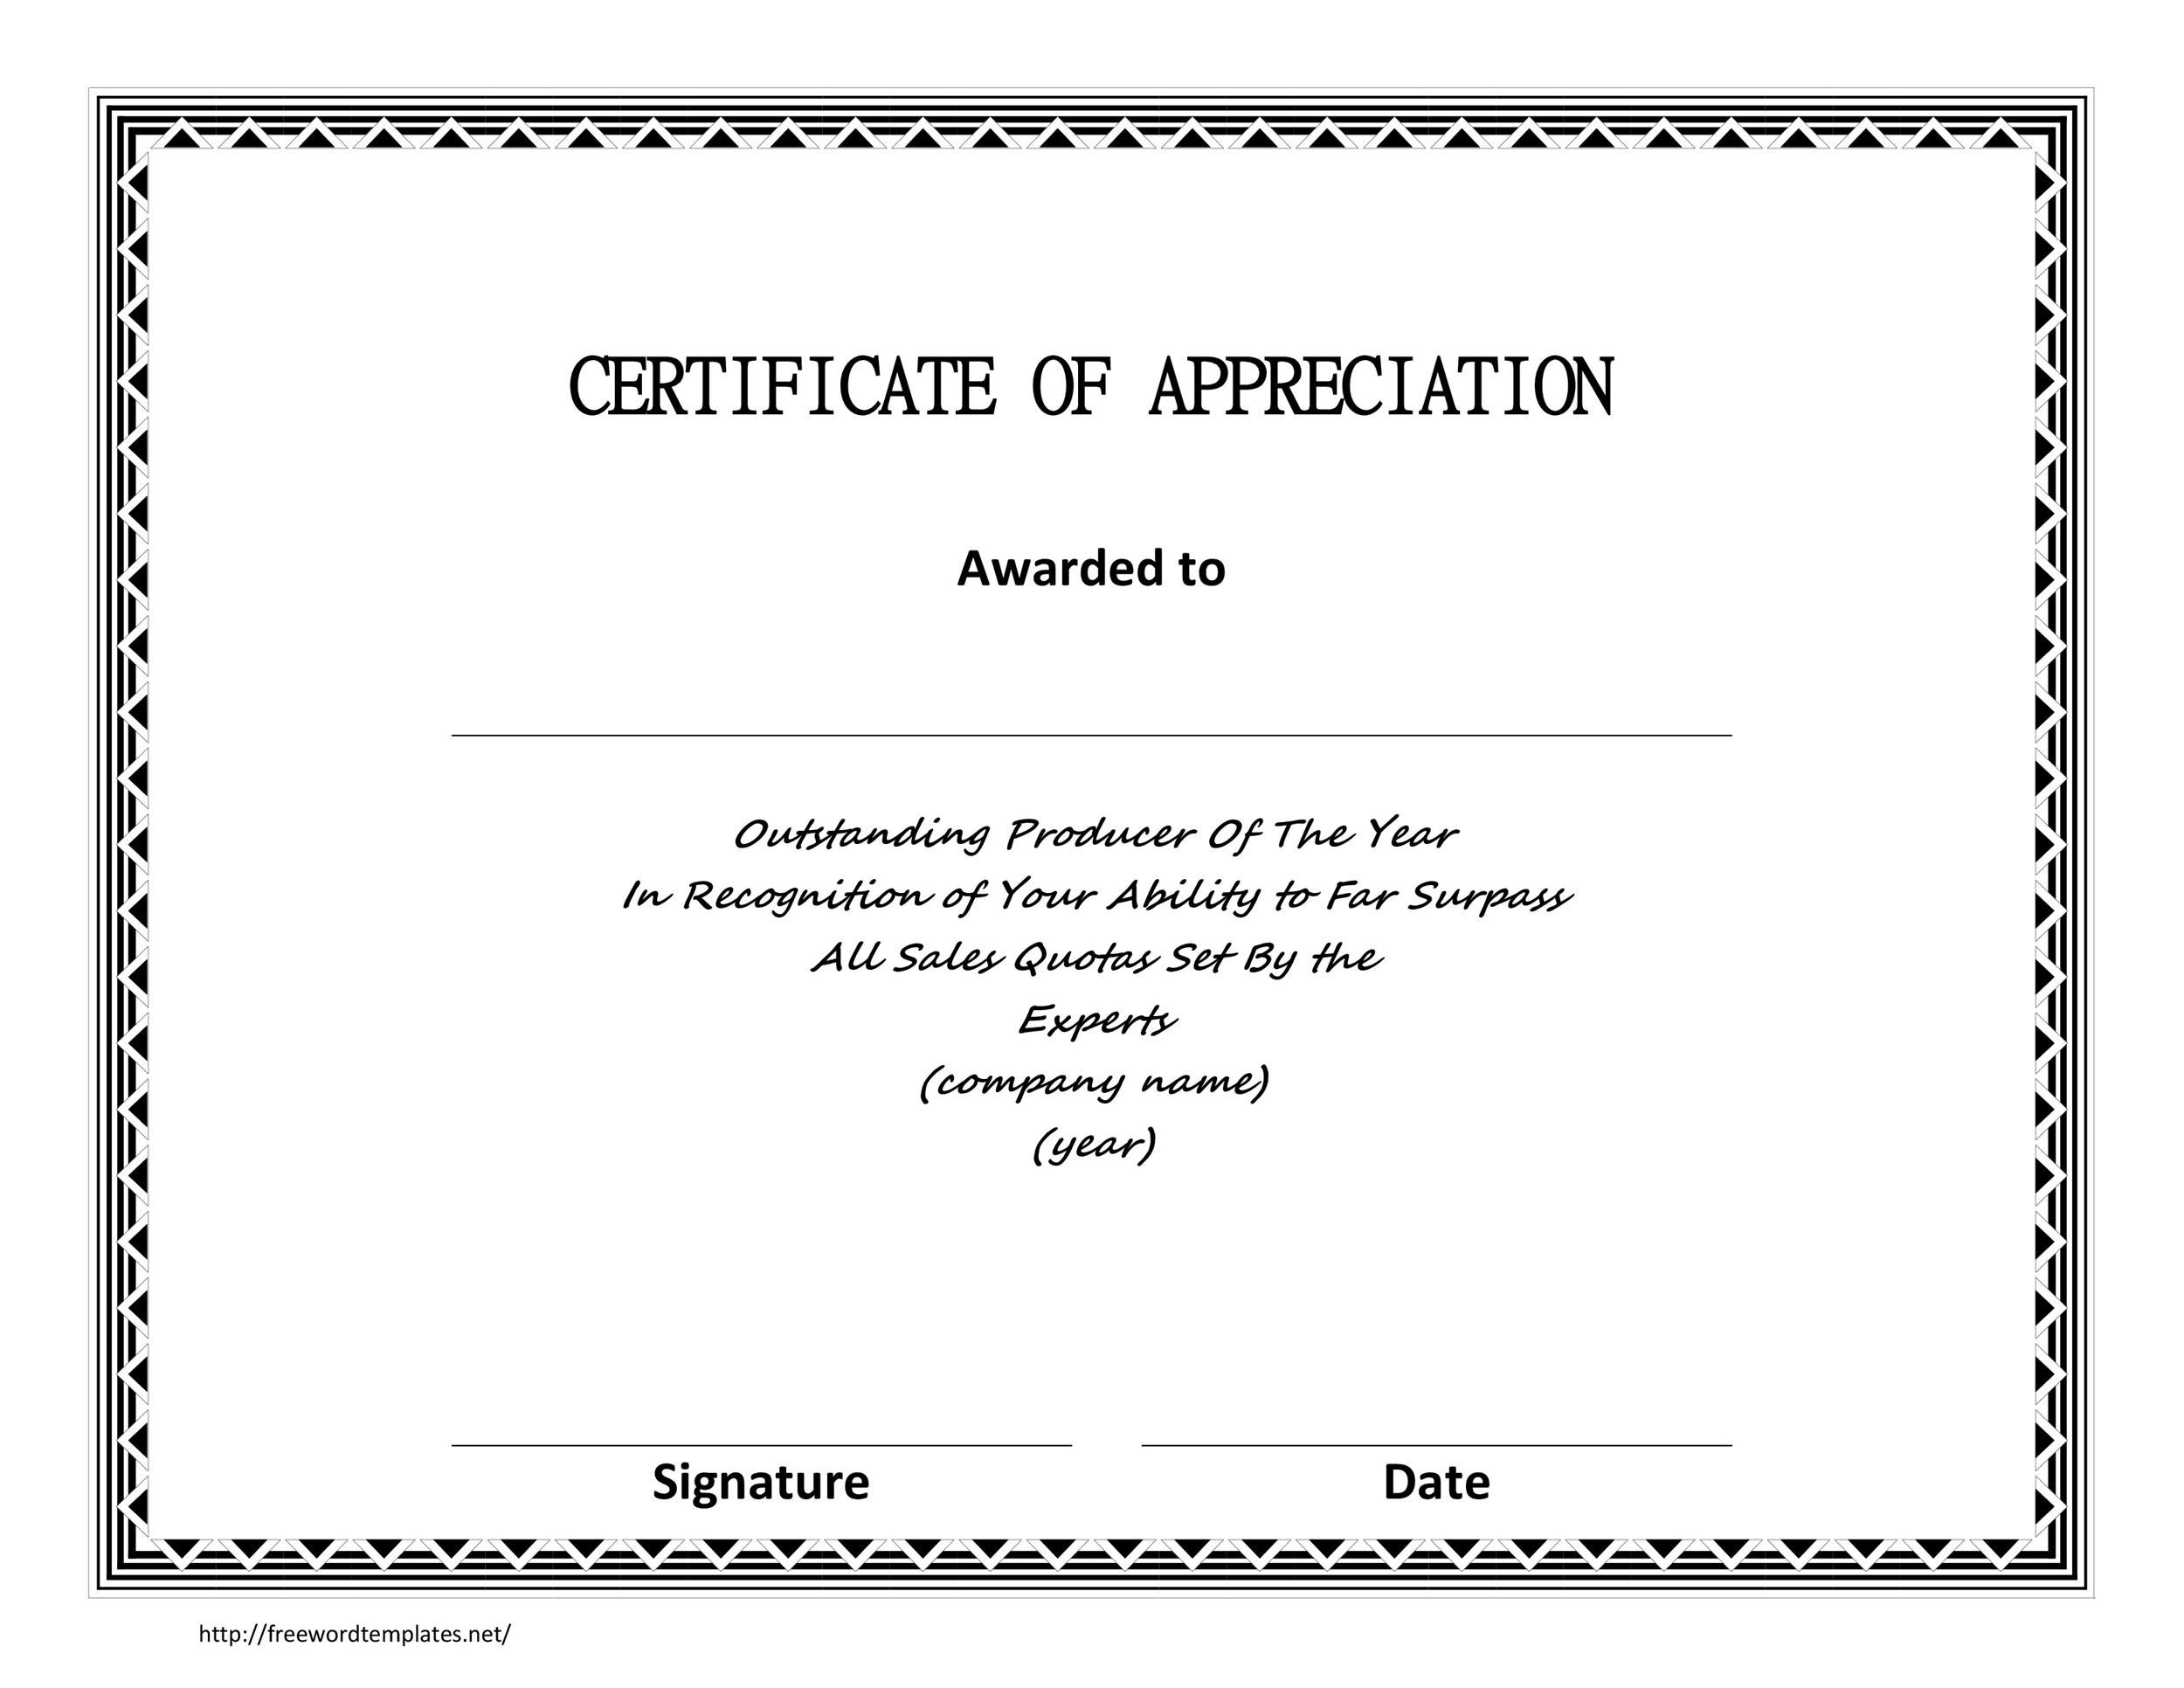 30 free certificate of appreciation templates and letters printable certificate of appreciation 06 yadclub Choice Image